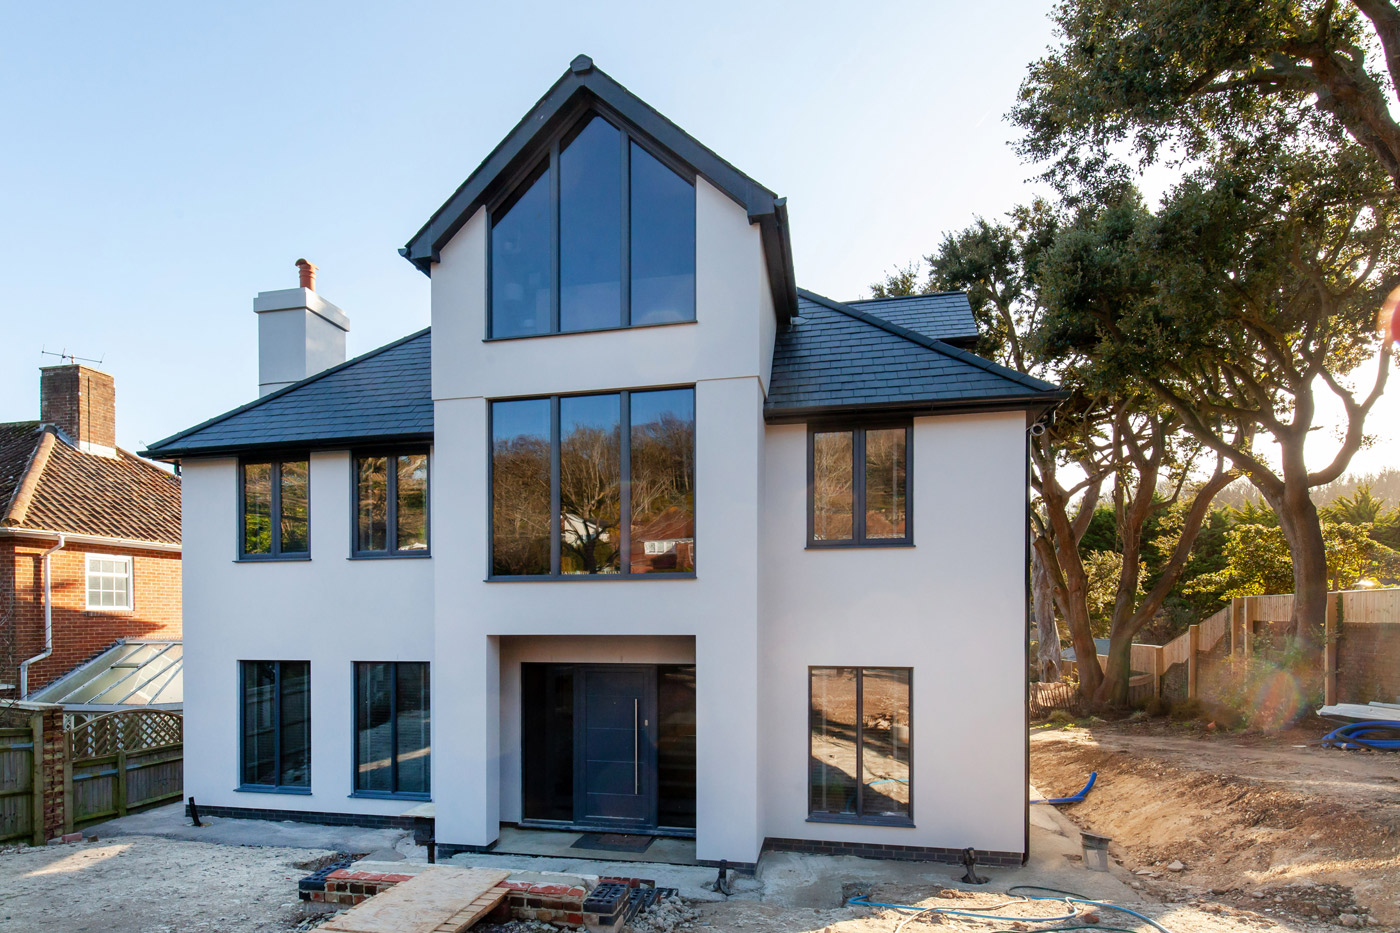 eastbourne design and build development